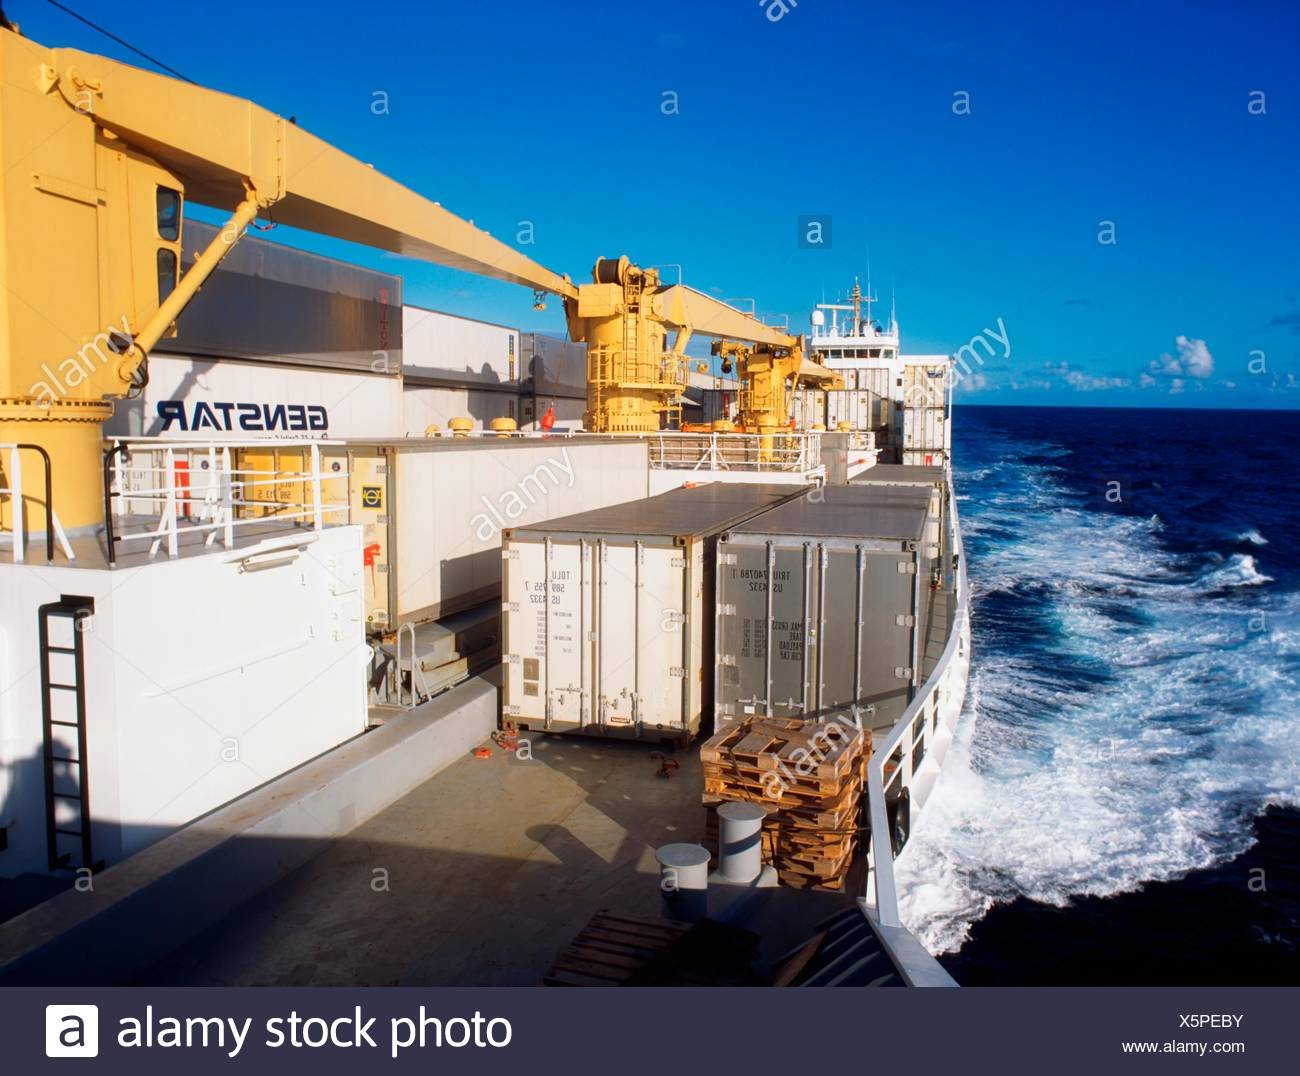 Container Ship At Sea - Stock Image